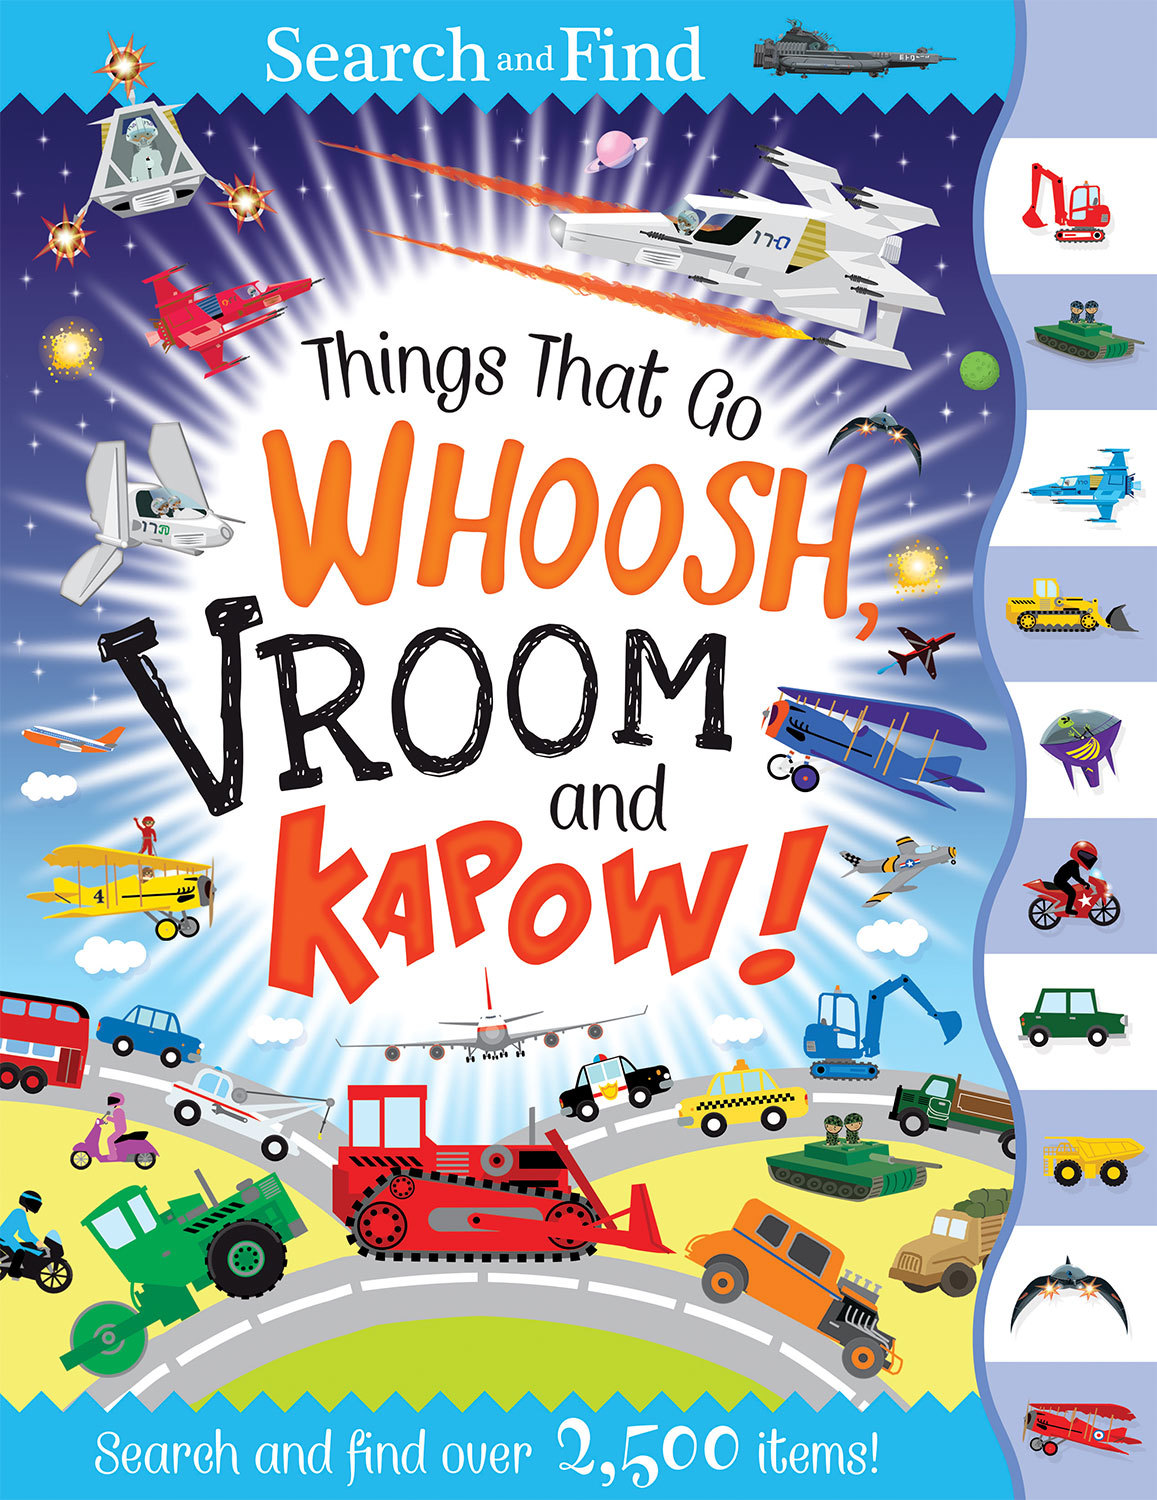 THINGS THAT GO WHOOSH, VROOM AND KAPOW!